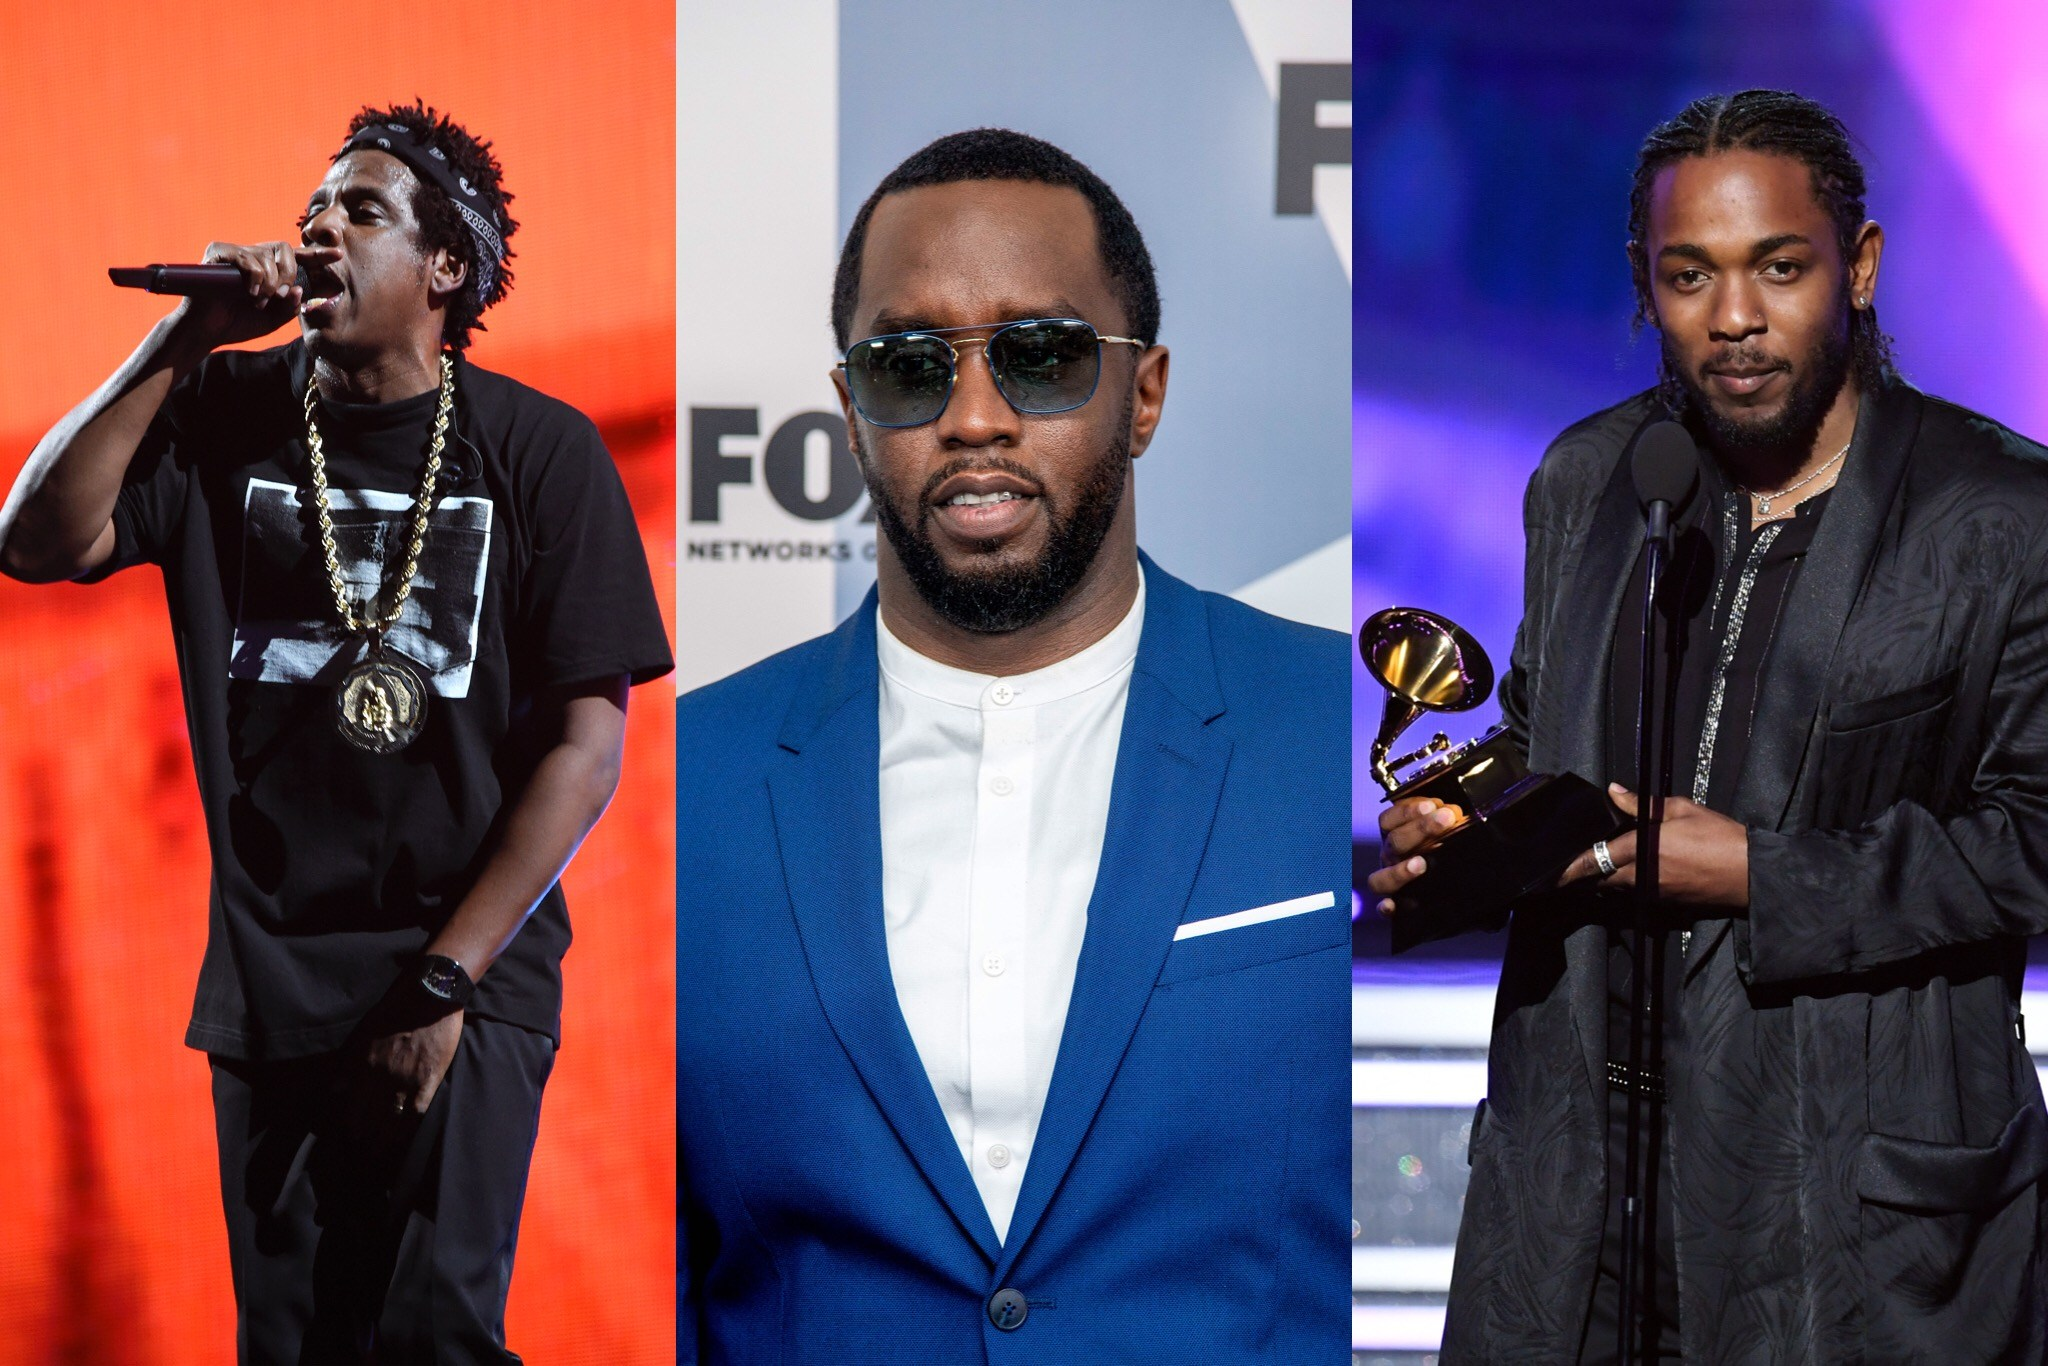 Jay-Z, Diddy And Kendrick Lamar Top The List For Forbes' Of The World's Highest Paid Hip-Hop Acts